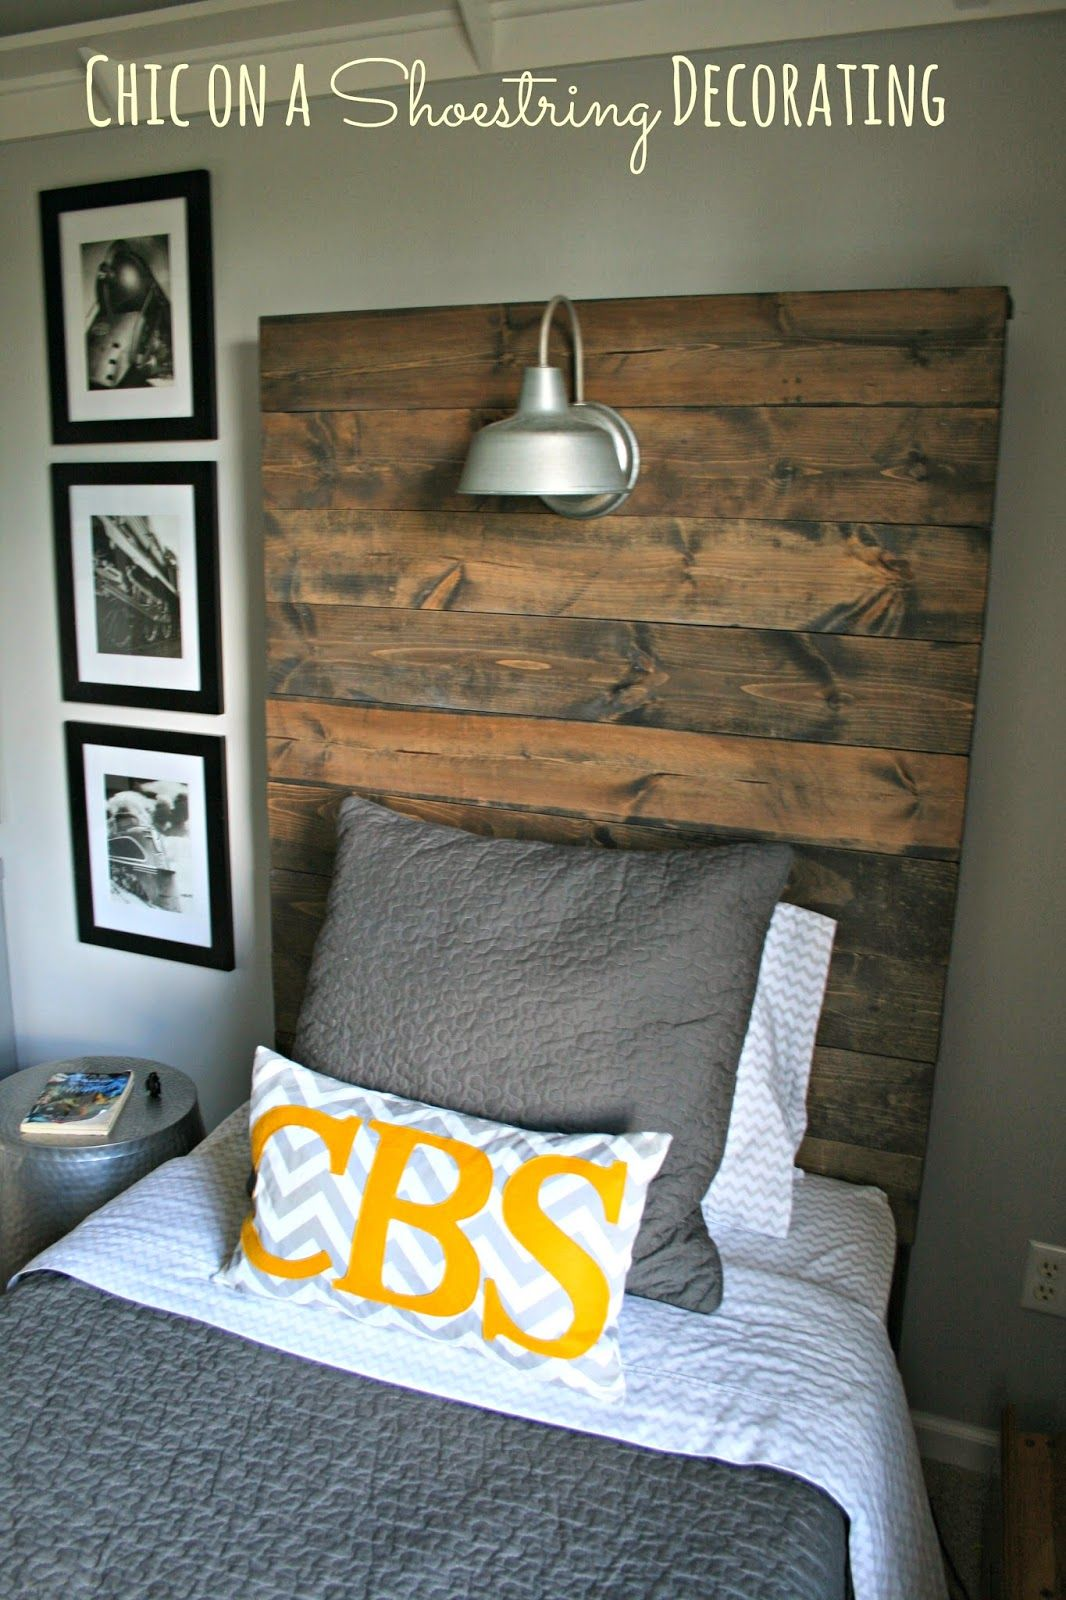 how to build a rustic, wooden headboard. my bigger boy room